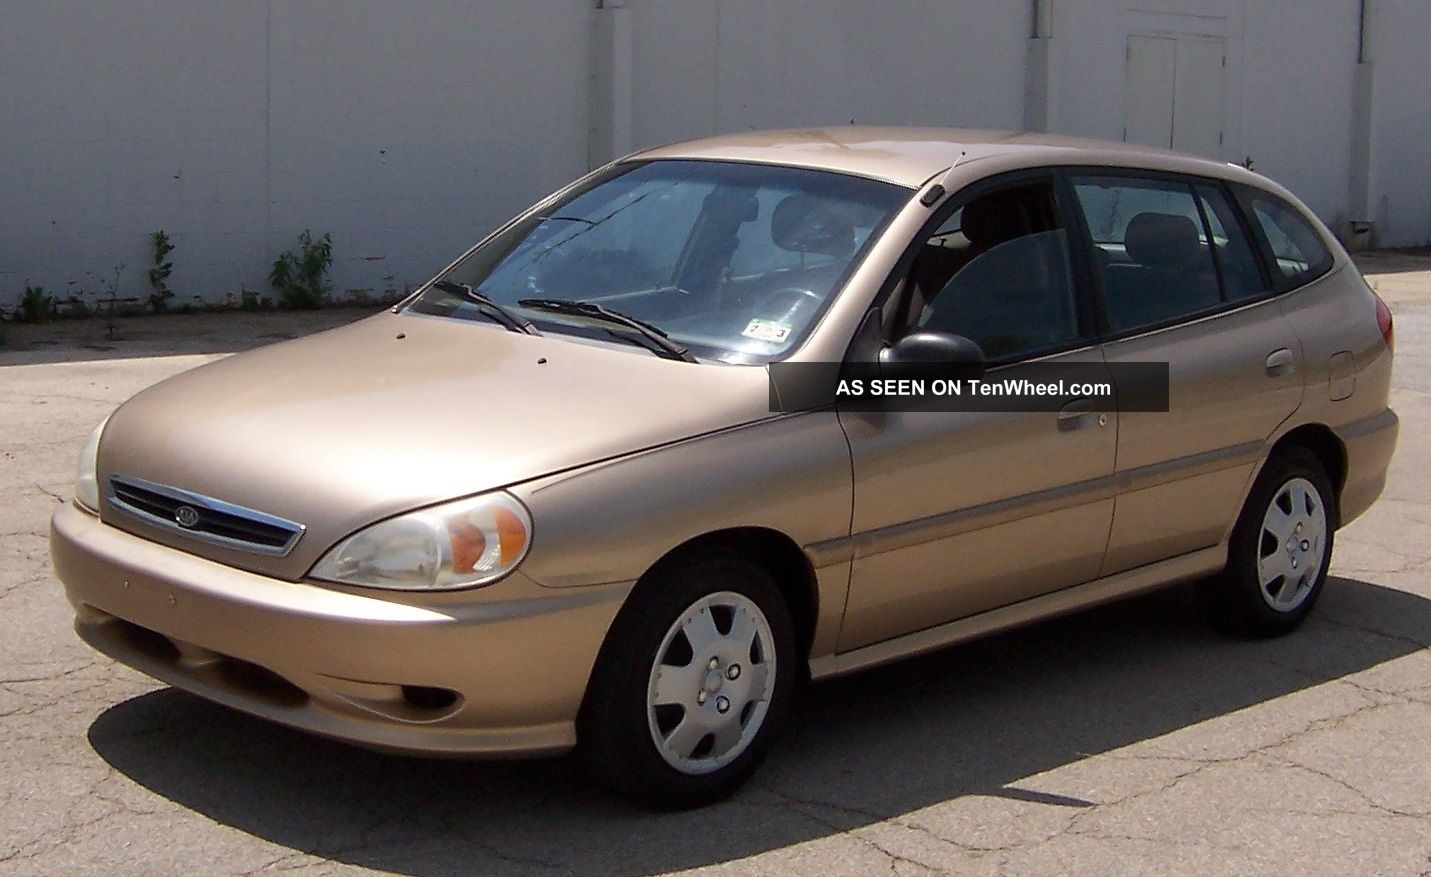 2002 Kia Rio 4 Door Sedan - Great Inexpensive Economical Reliable Transportation Rio photo